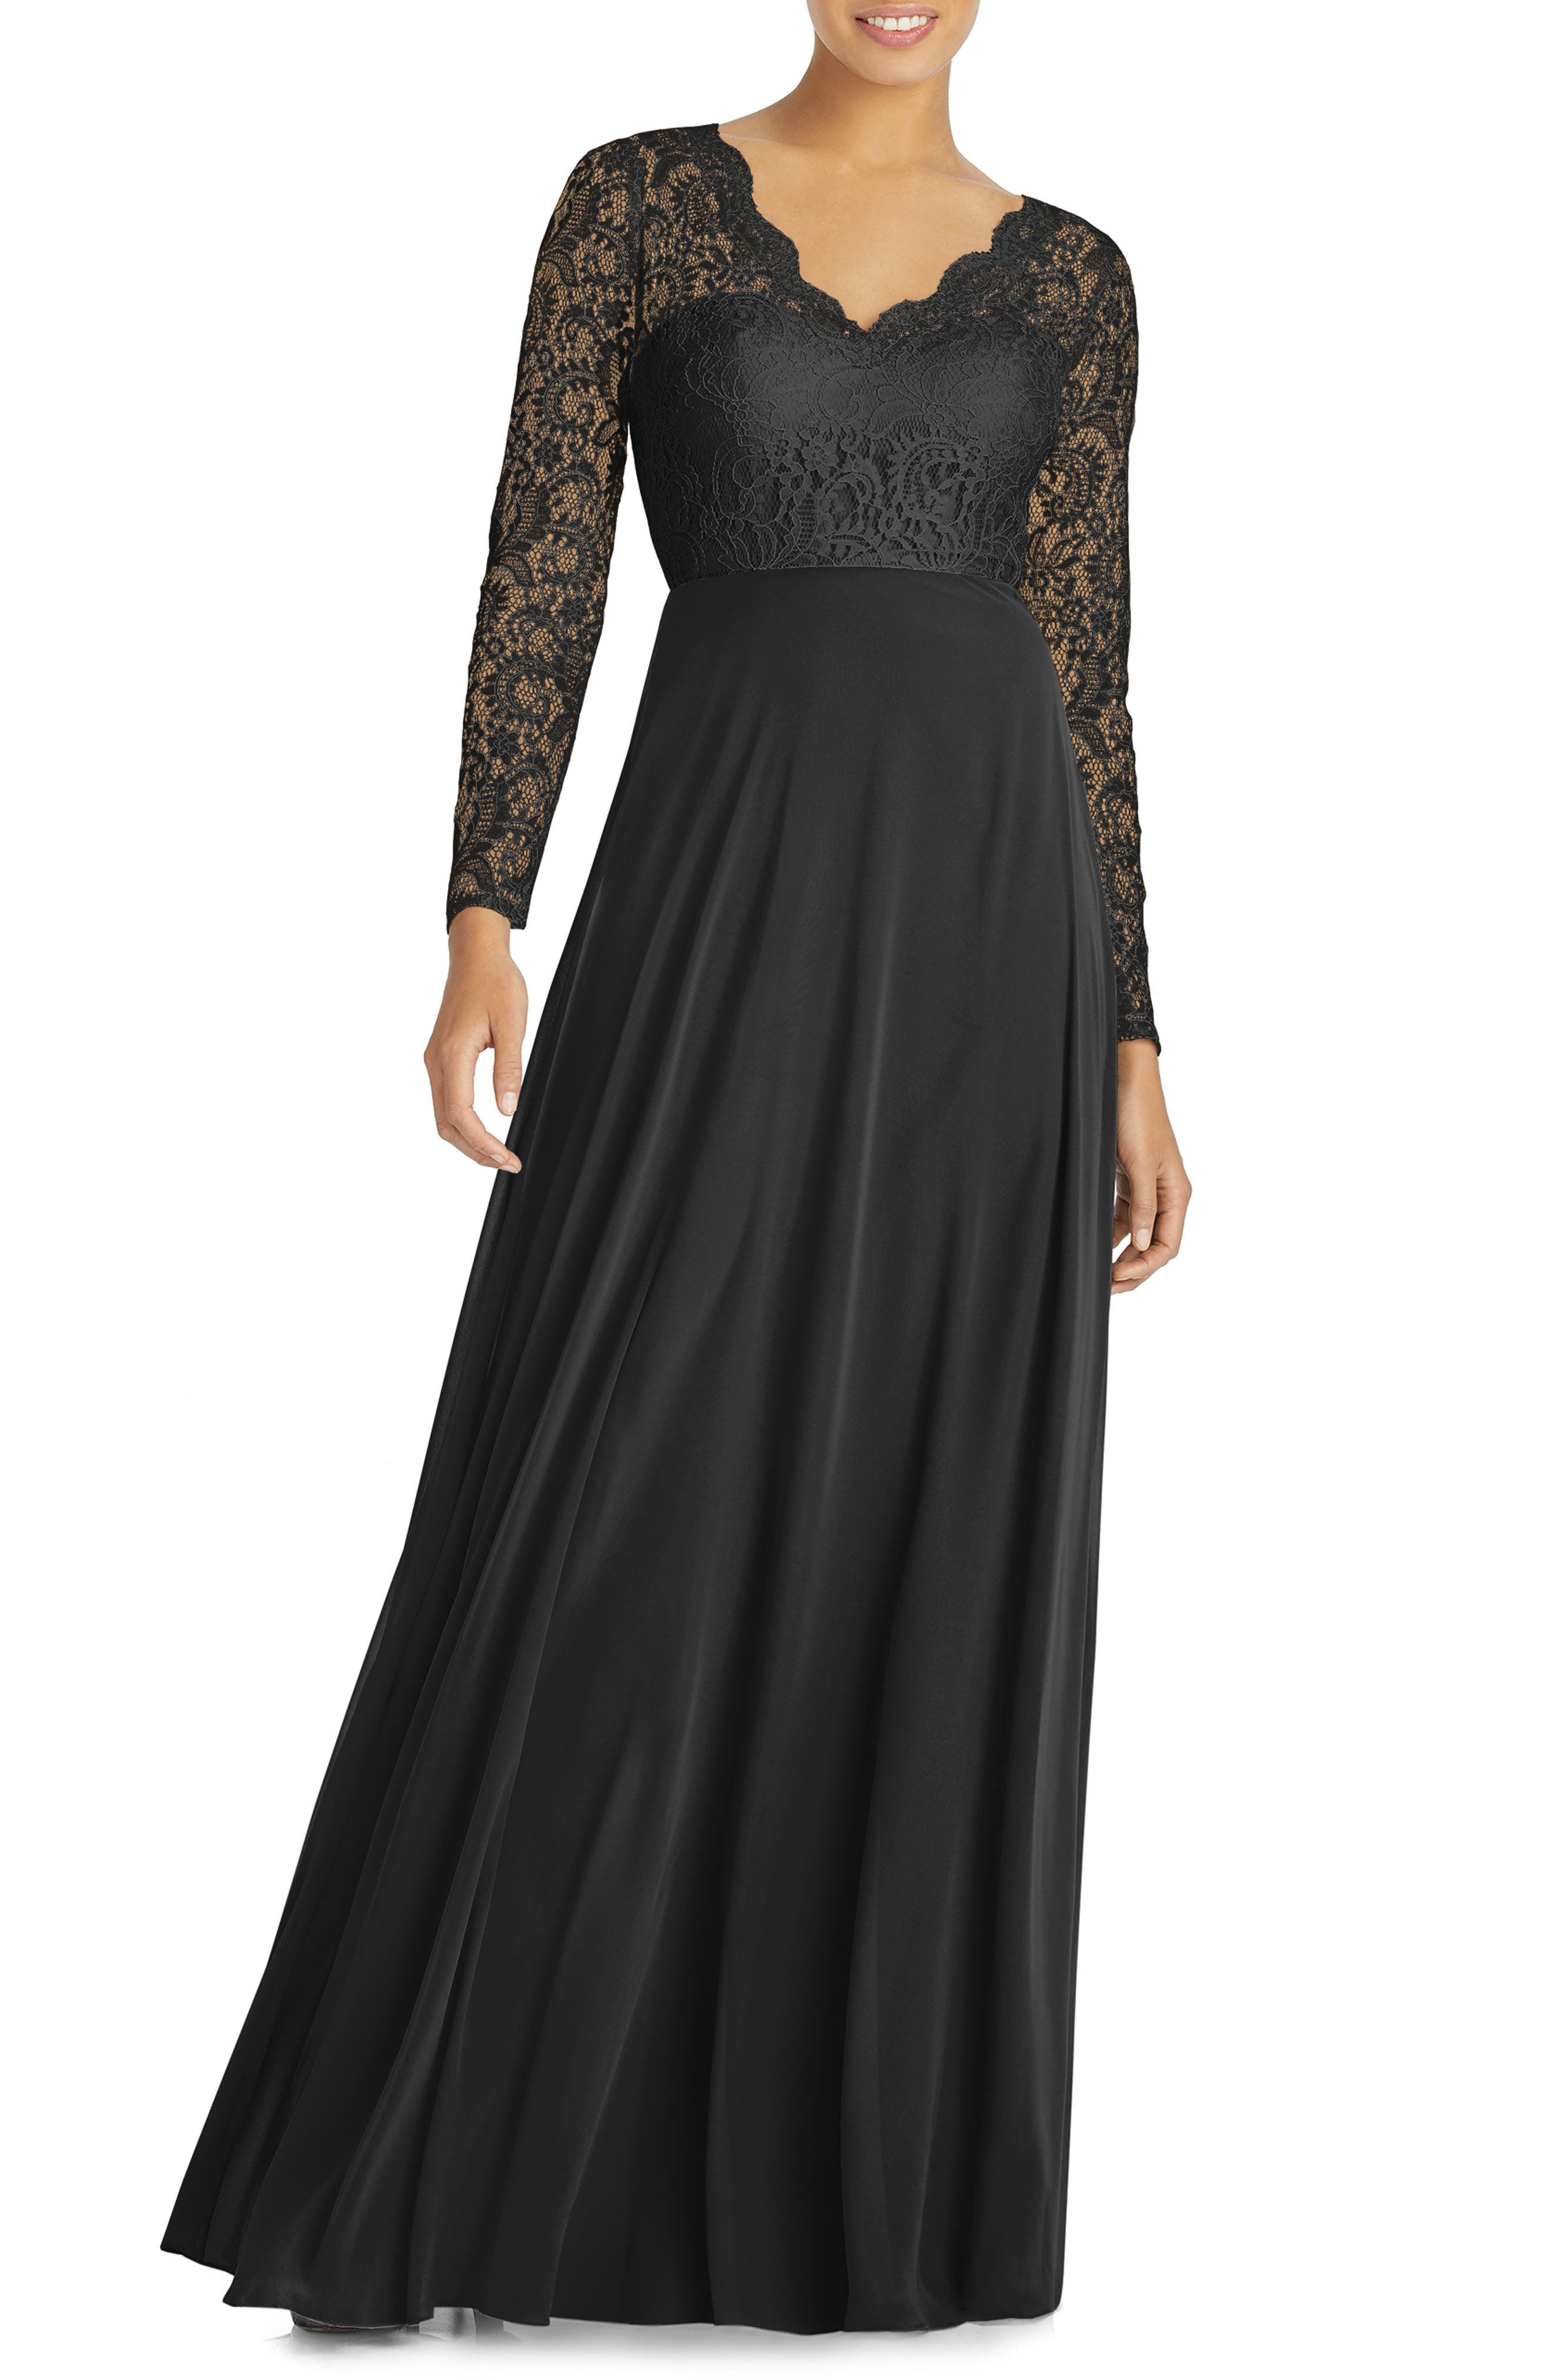 1940s Formal Dresses, Evening Gowns History Womens Dessy Collection Long Sleeve Lace  Chiffon Gown $284.00 AT vintagedancer.com